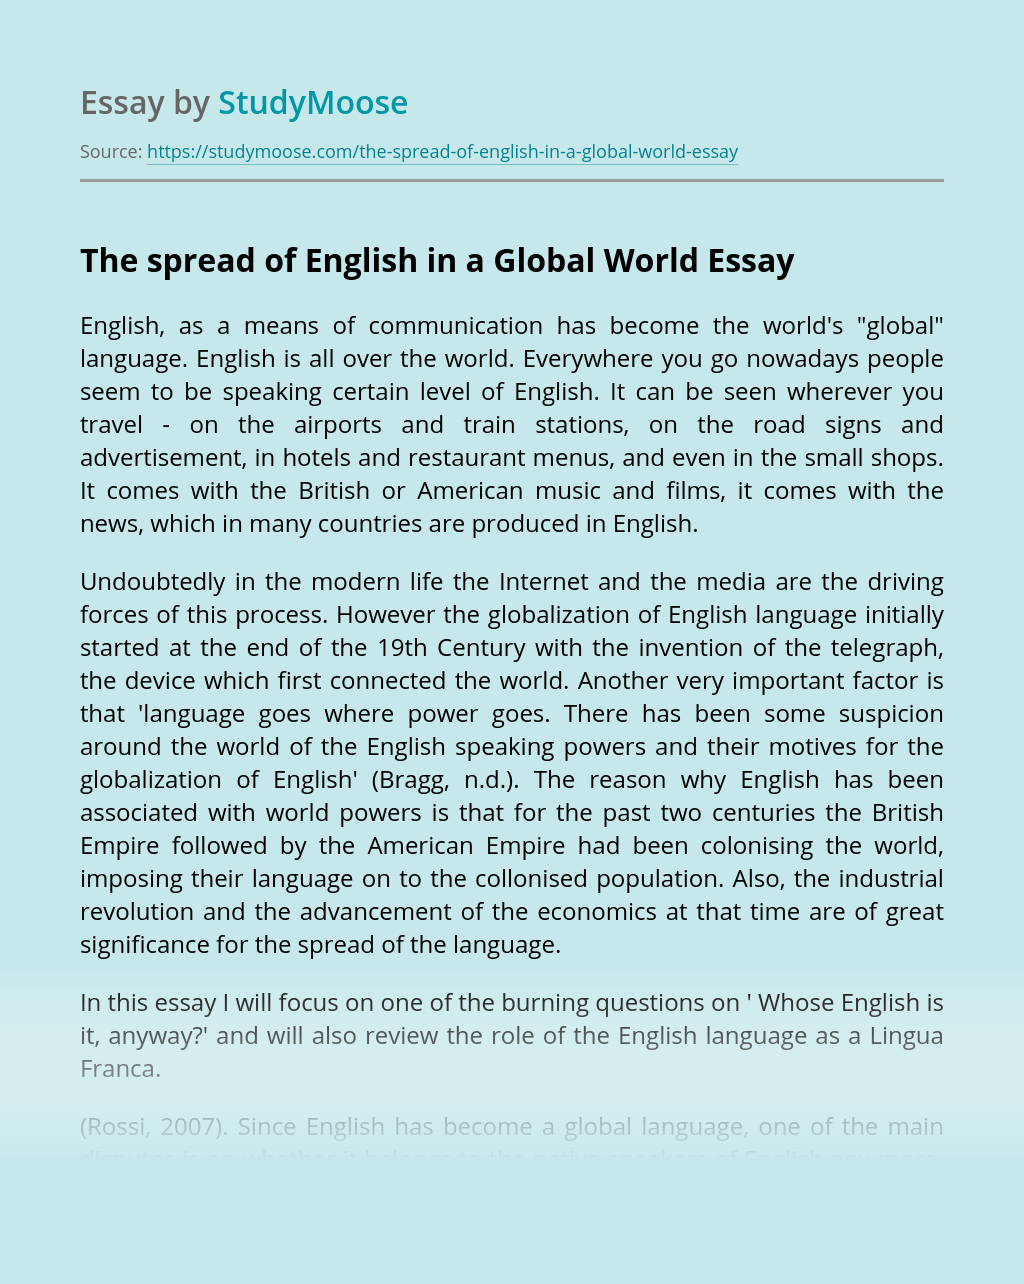 The spread of English in a Global World